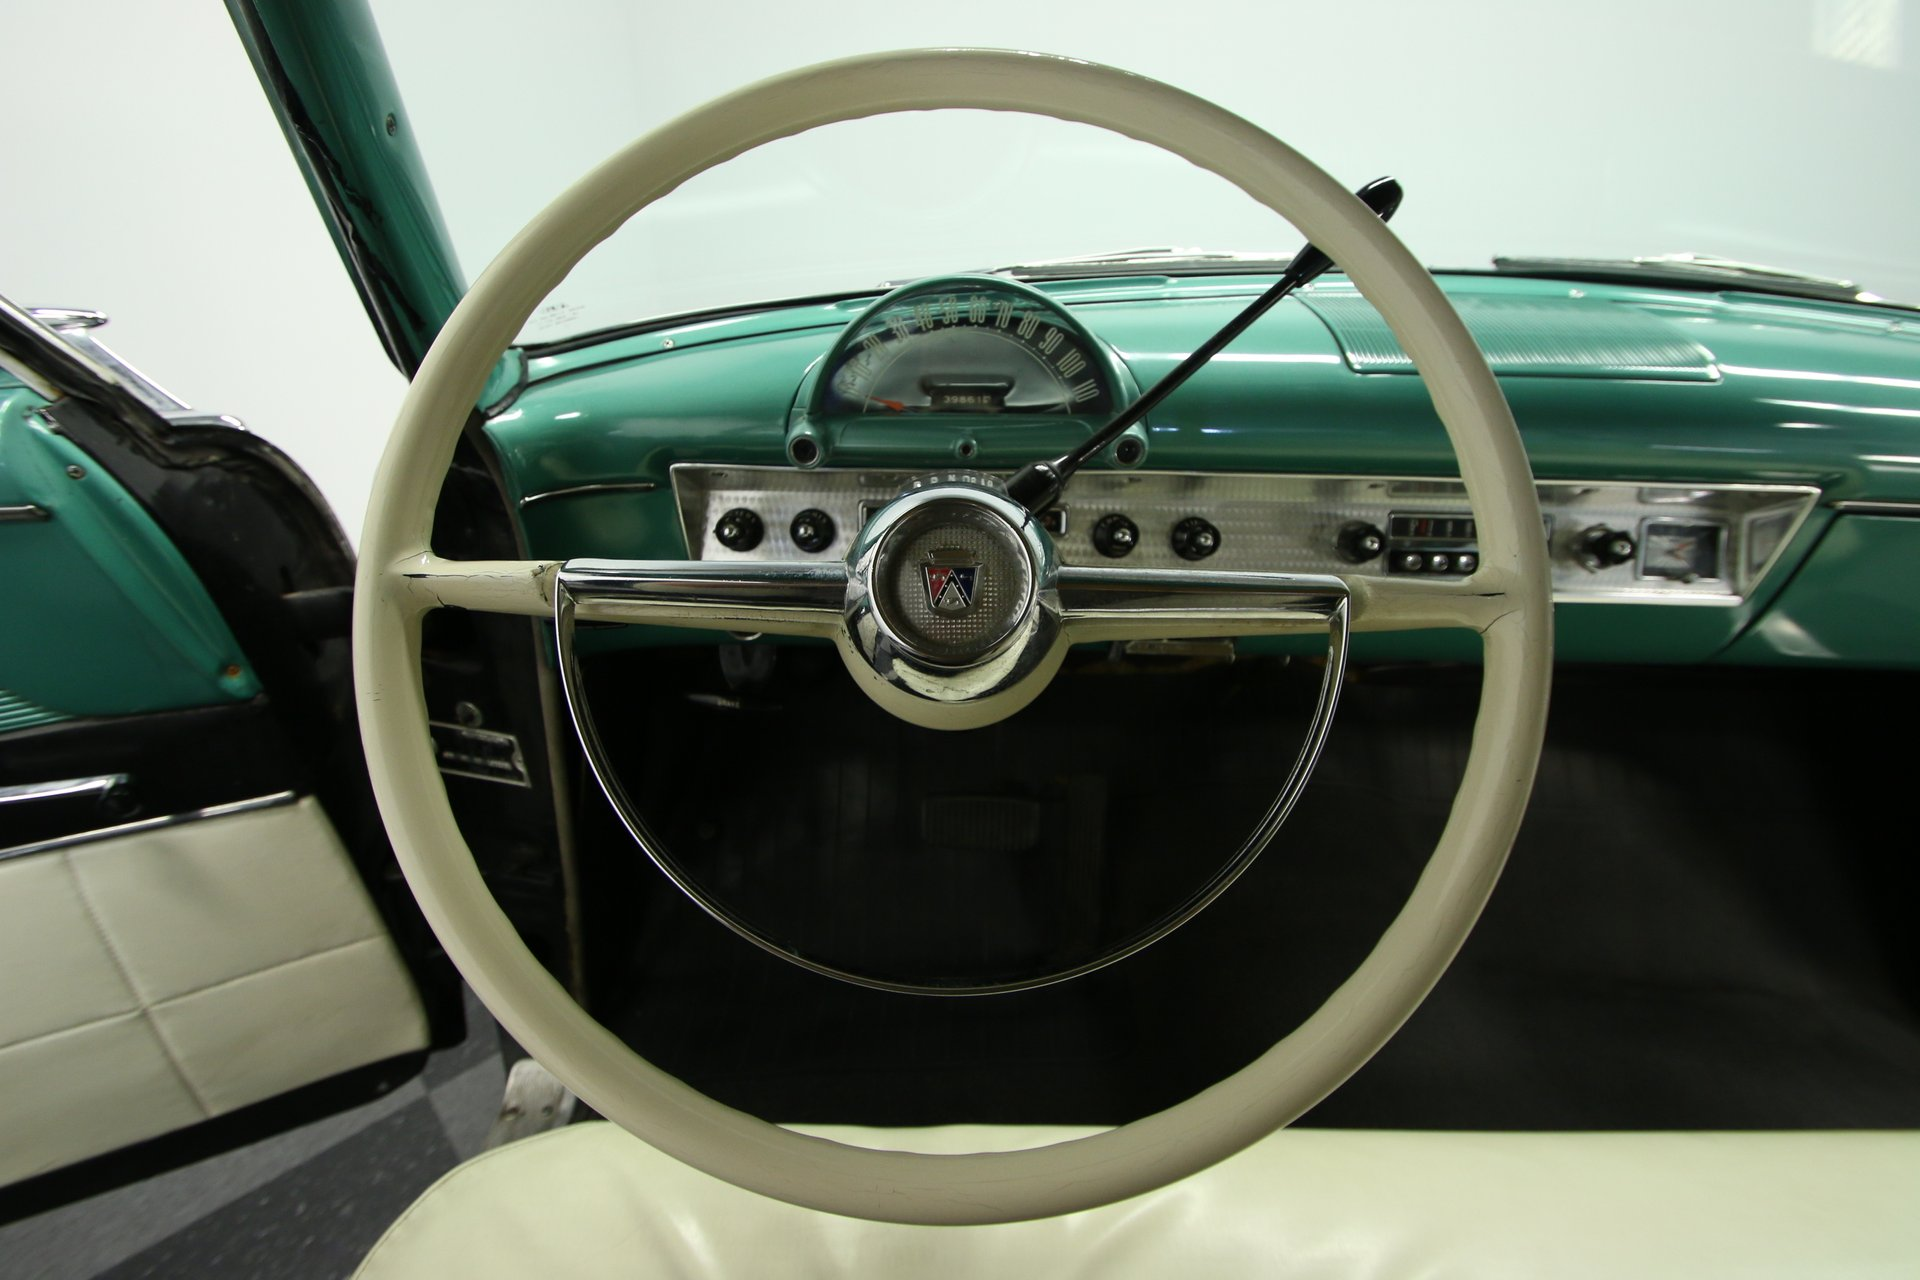 Diagram Of The 54 55 Fordomatic Steering Column And Steering